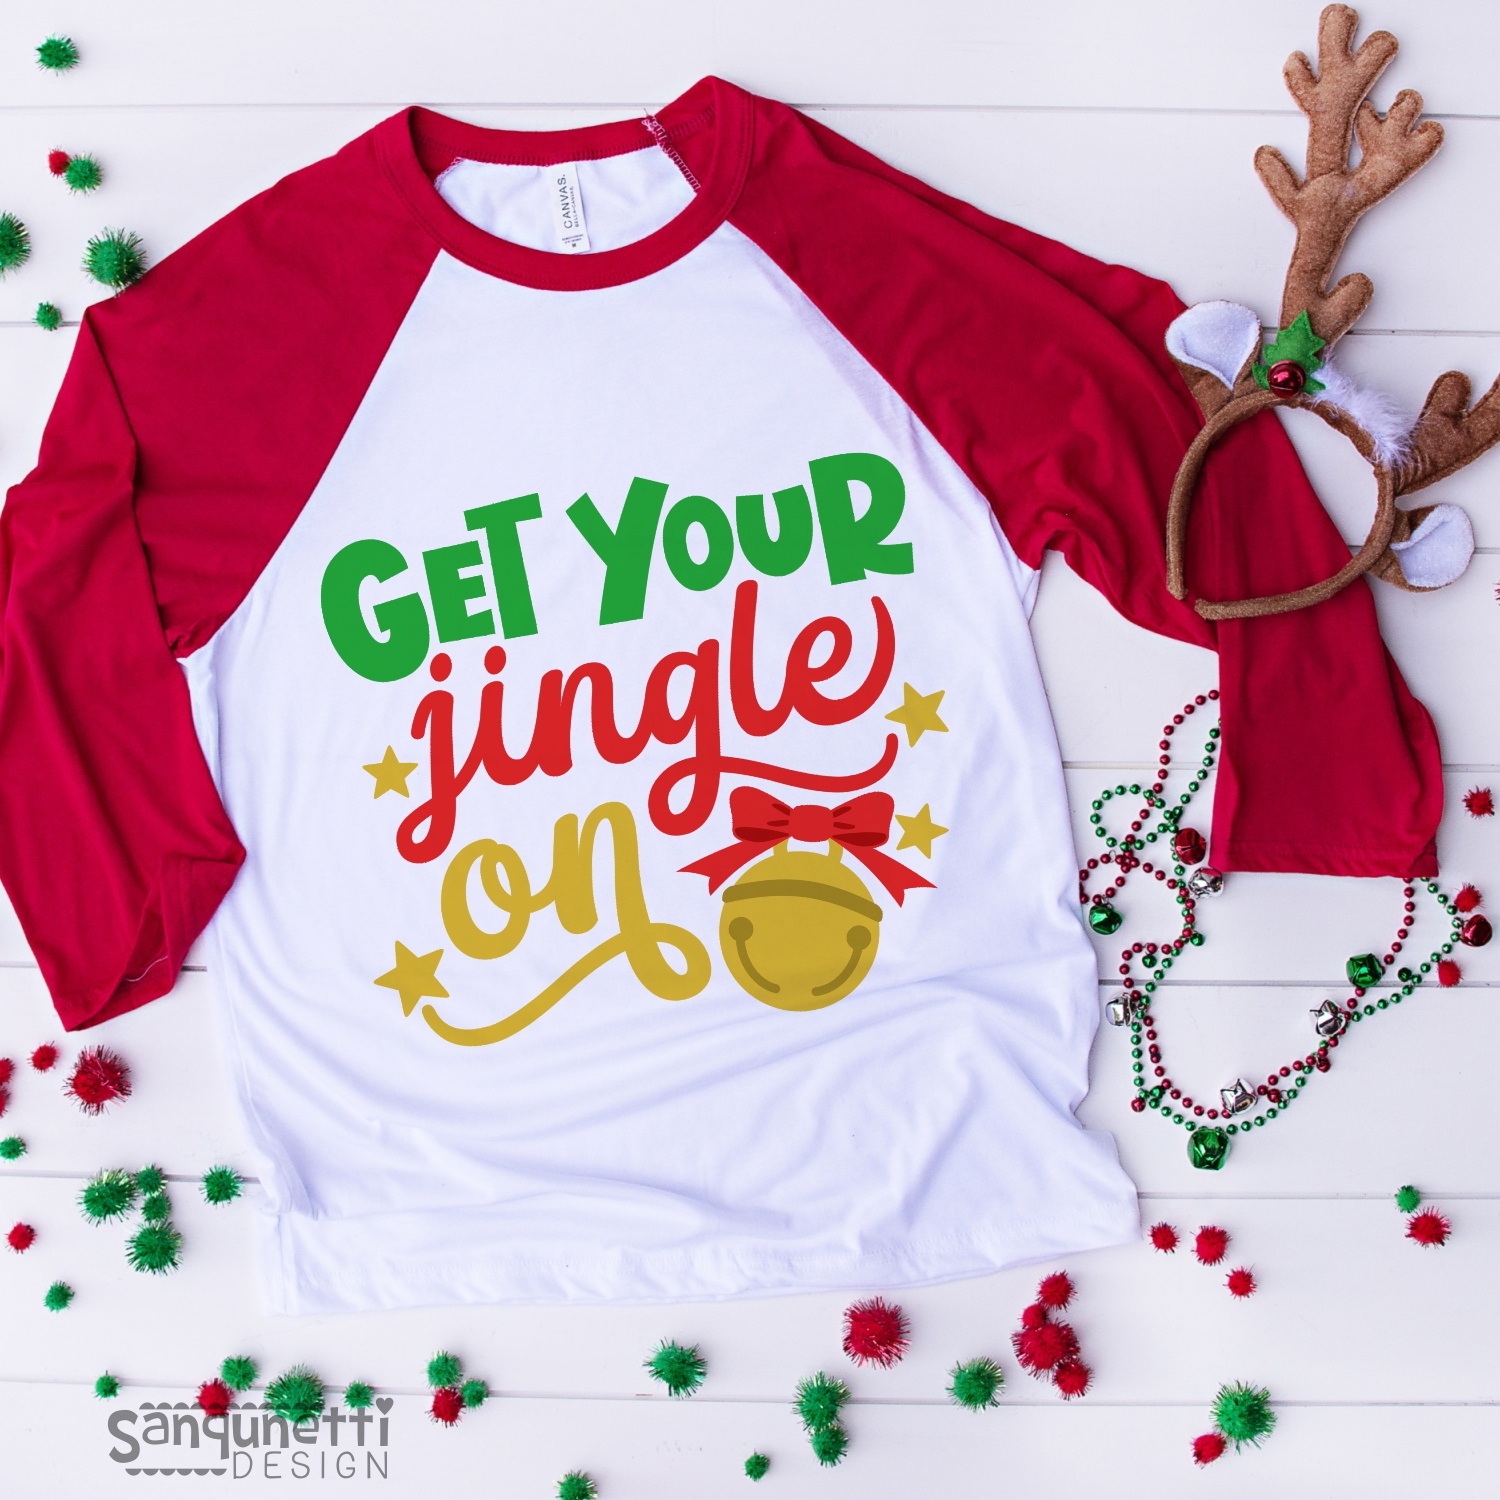 Get your jingle on svg, Christmas bells cutting file example image 2